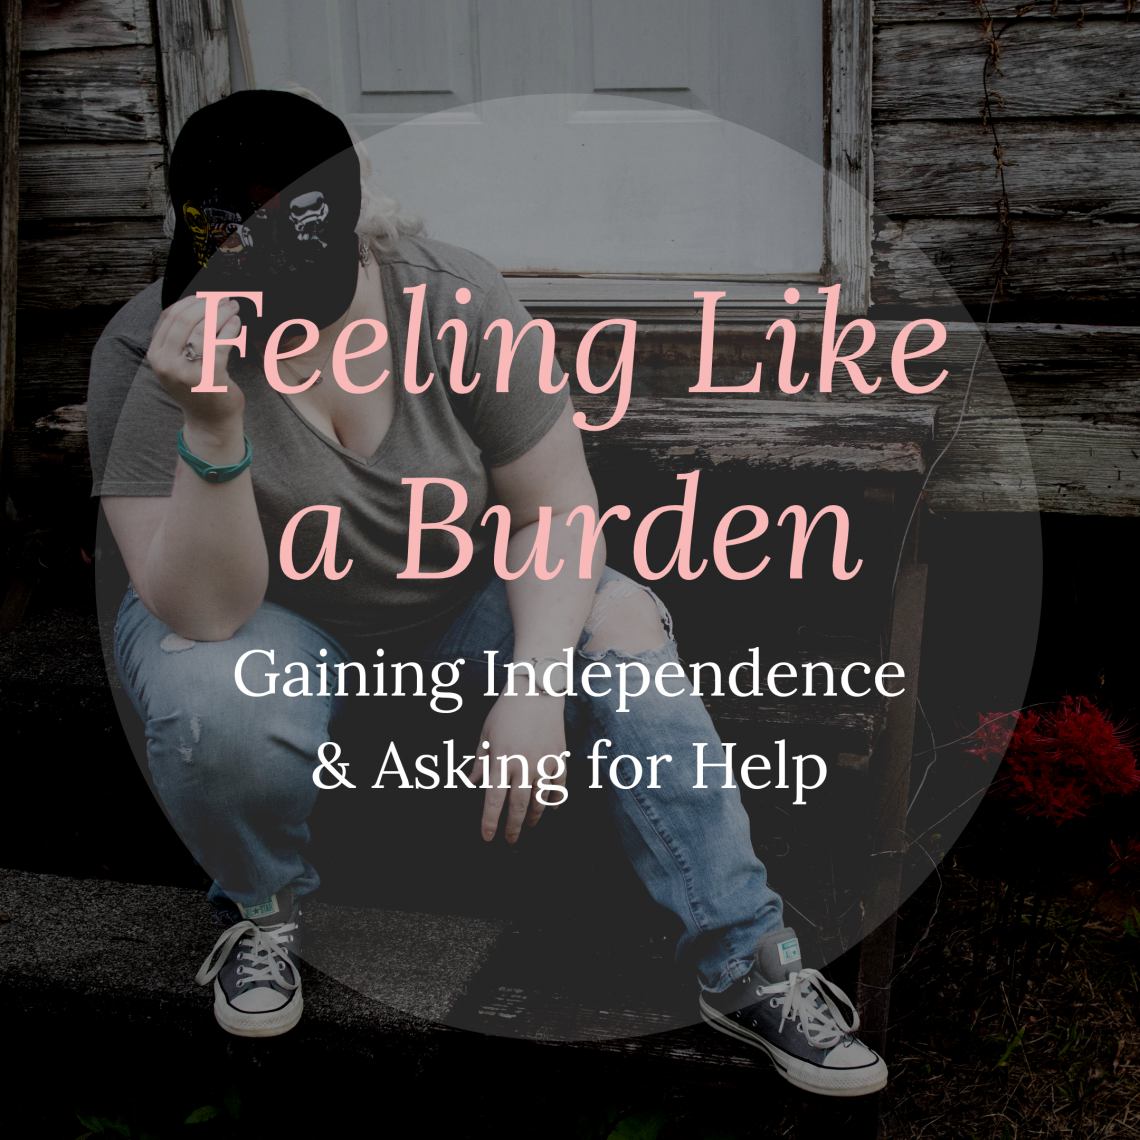 Feeling like a burden featured image